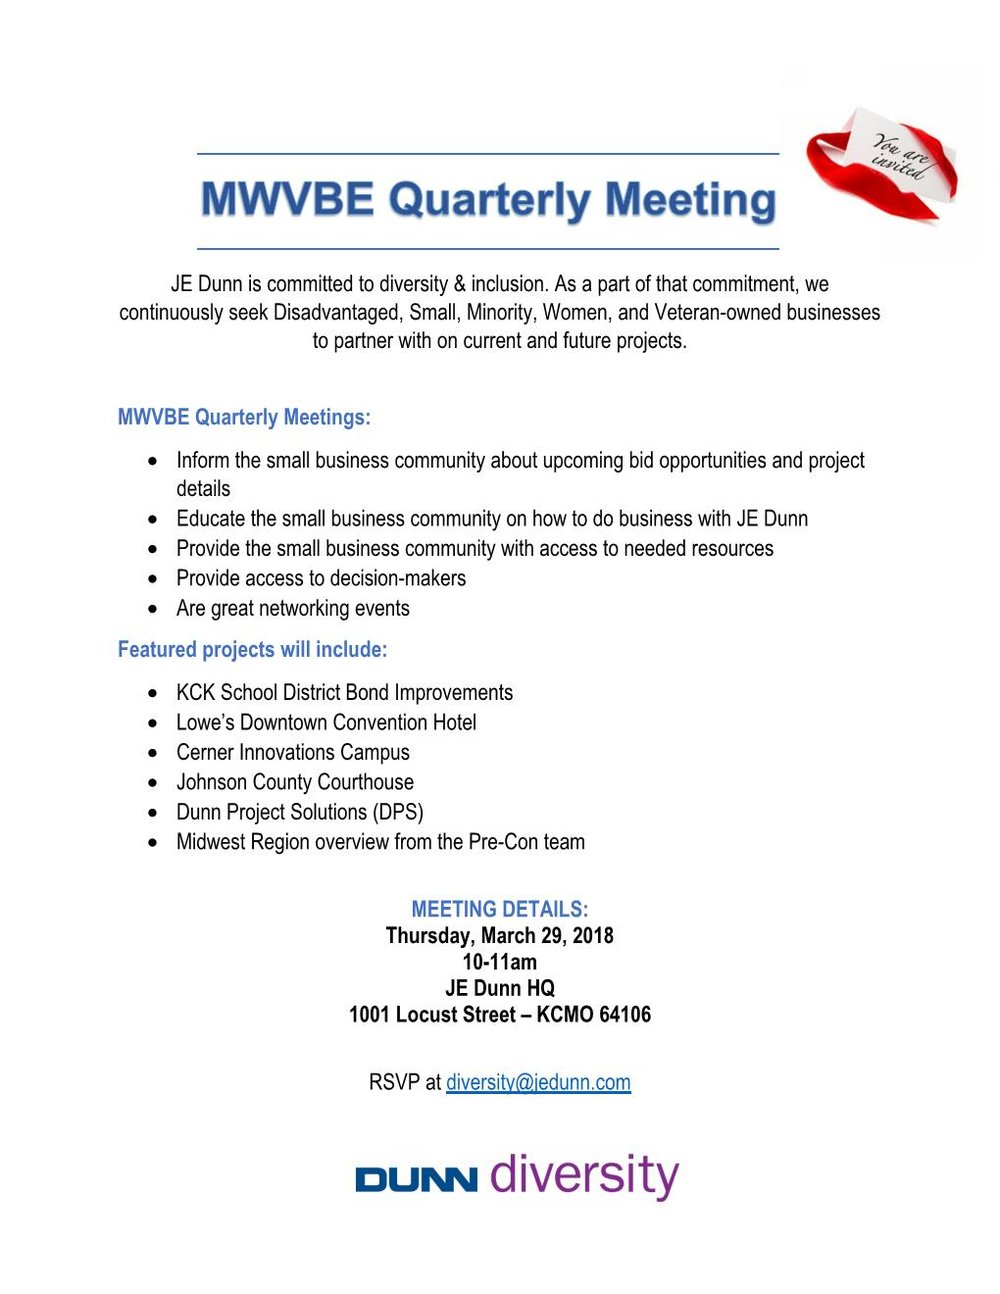 MWVBE Quarterly Meeting_03292018.jpg